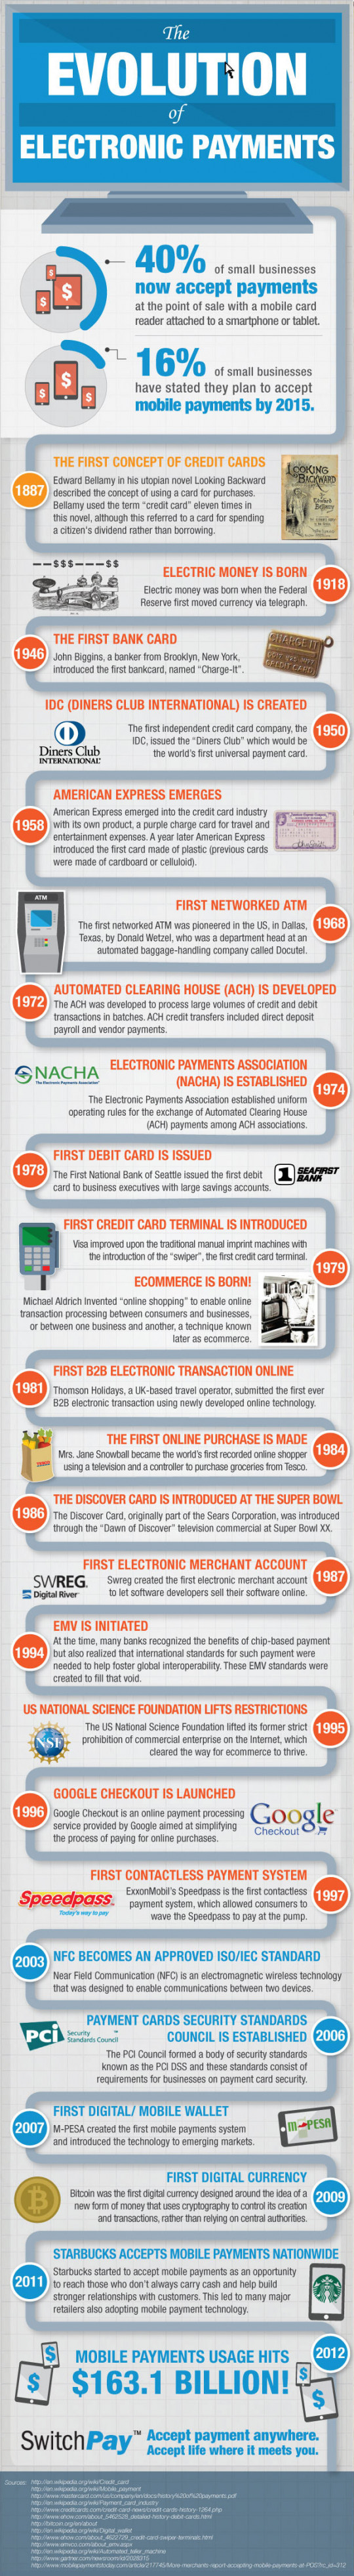 The Evolution of Electronic Payments